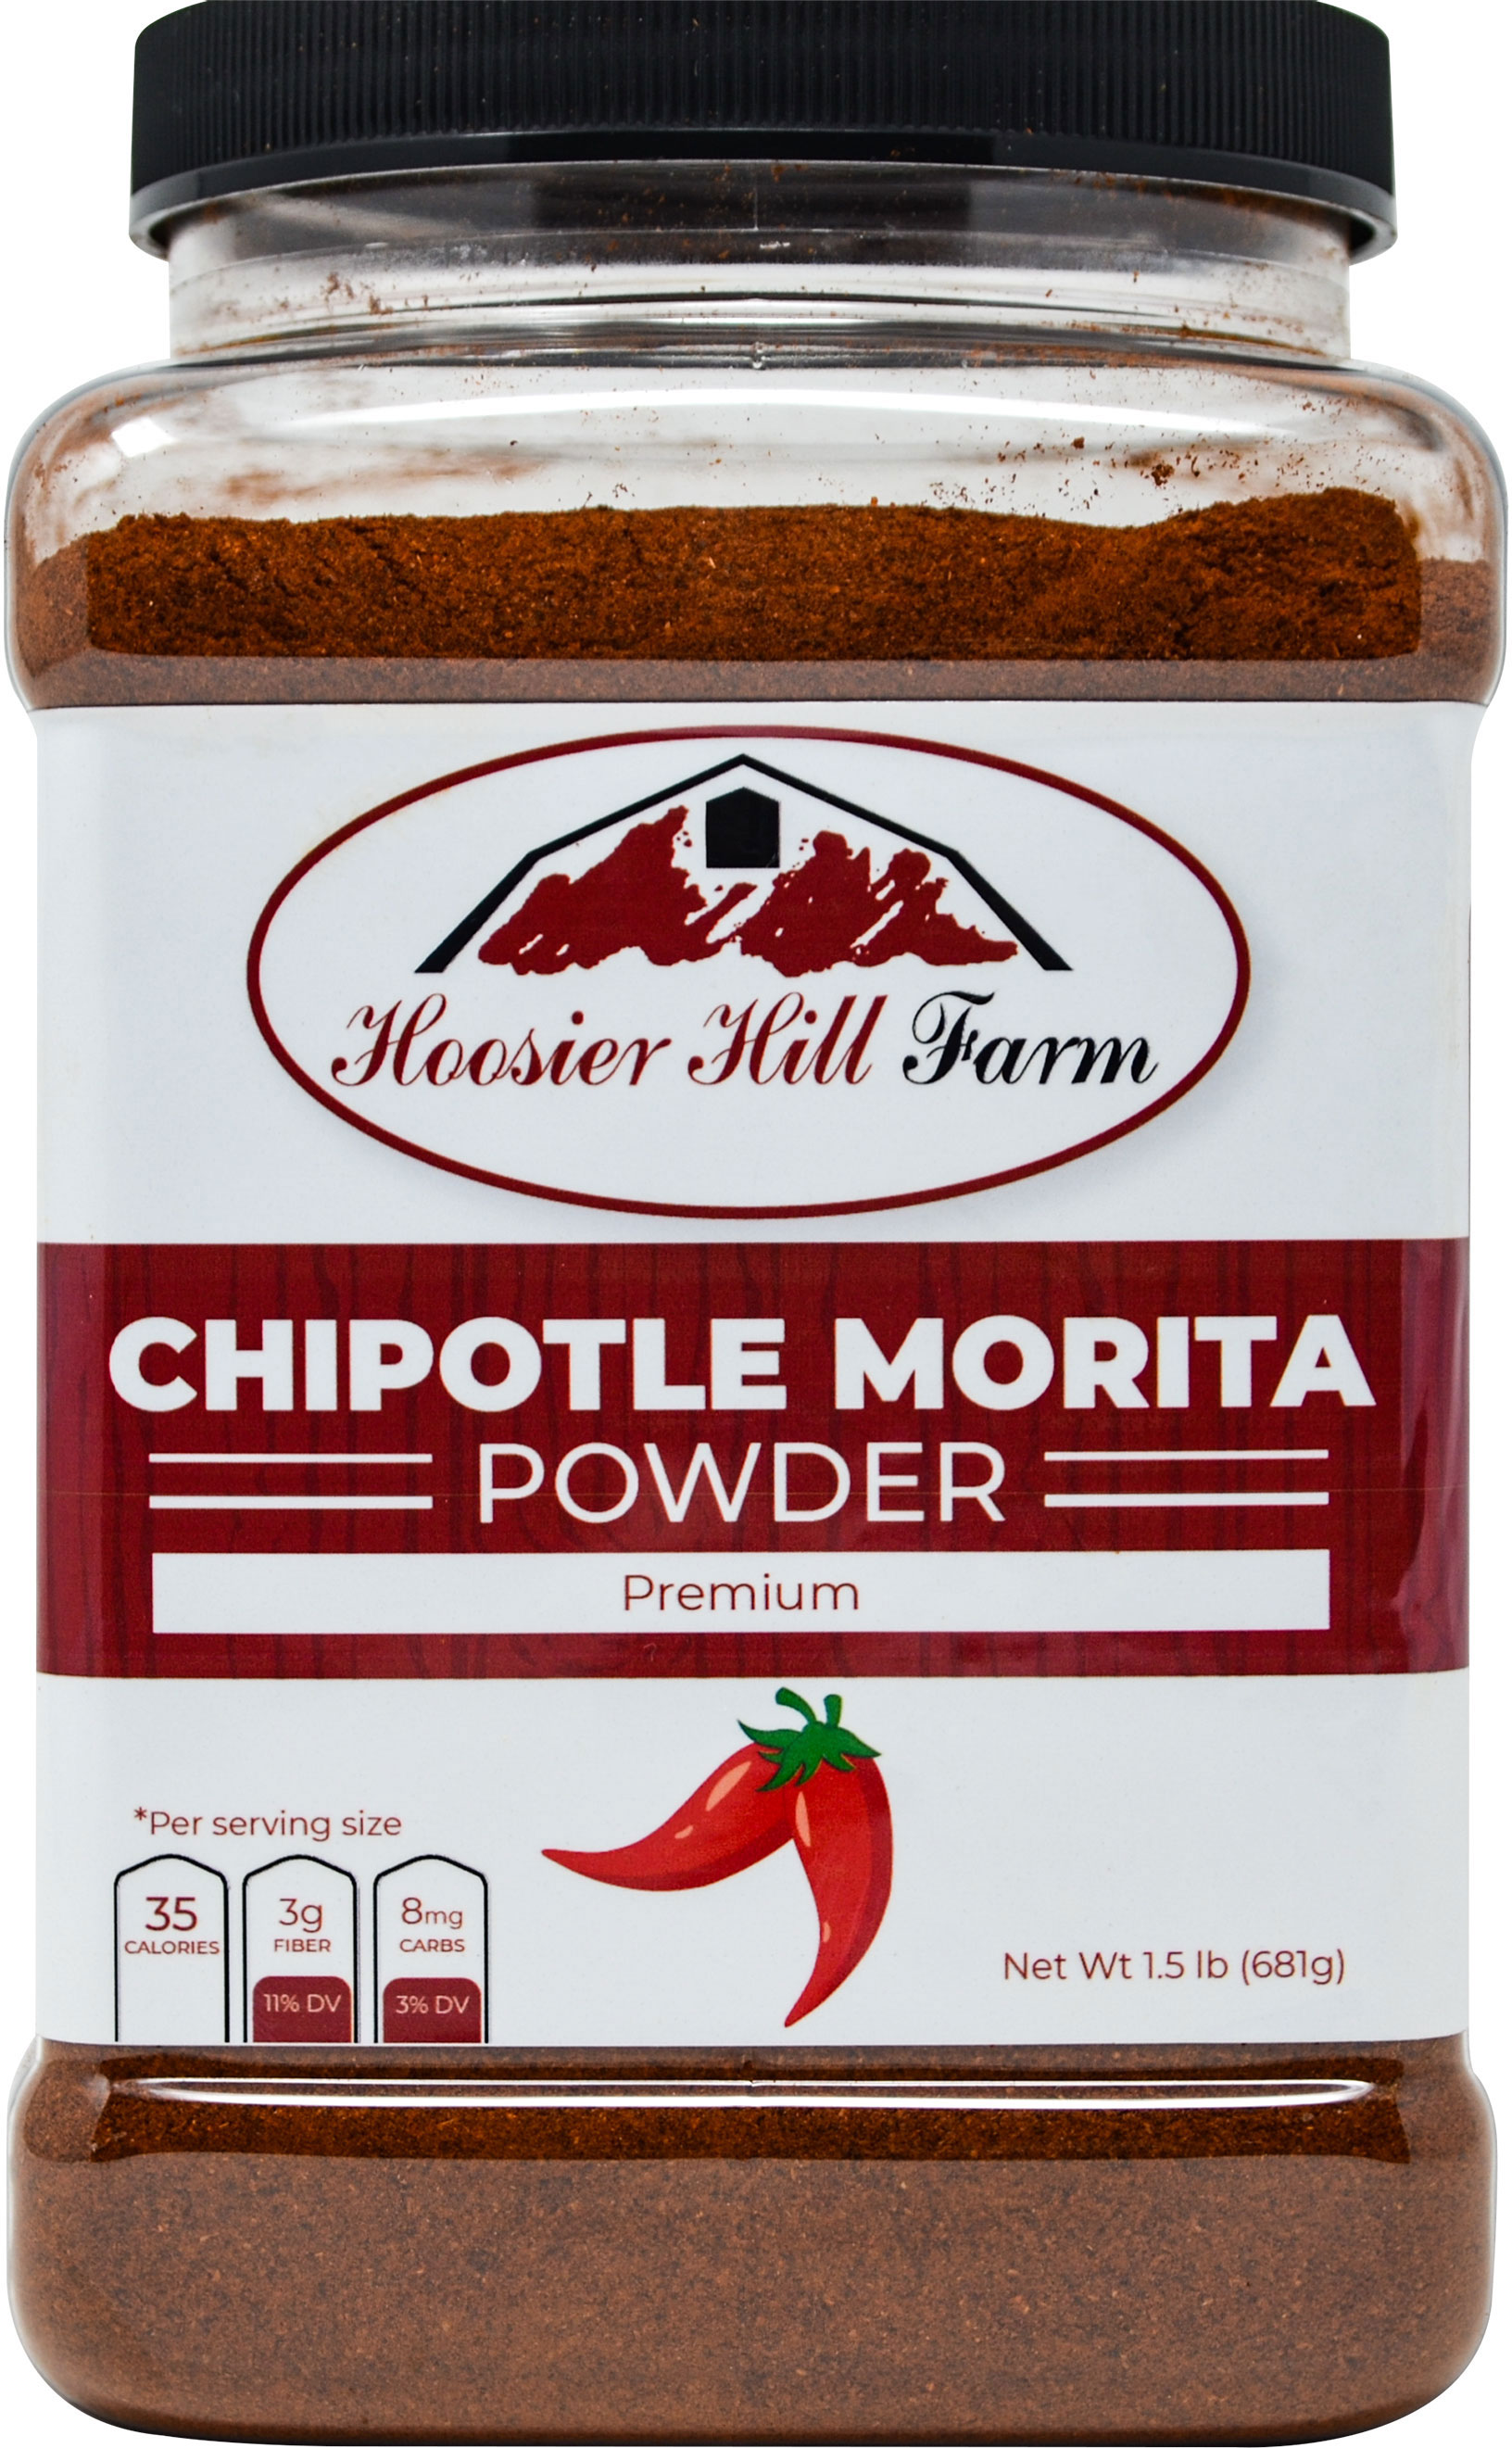 Hoosier Hill Farm Chipotle Morita Powder, 1.5 lbs. Plastic Jar